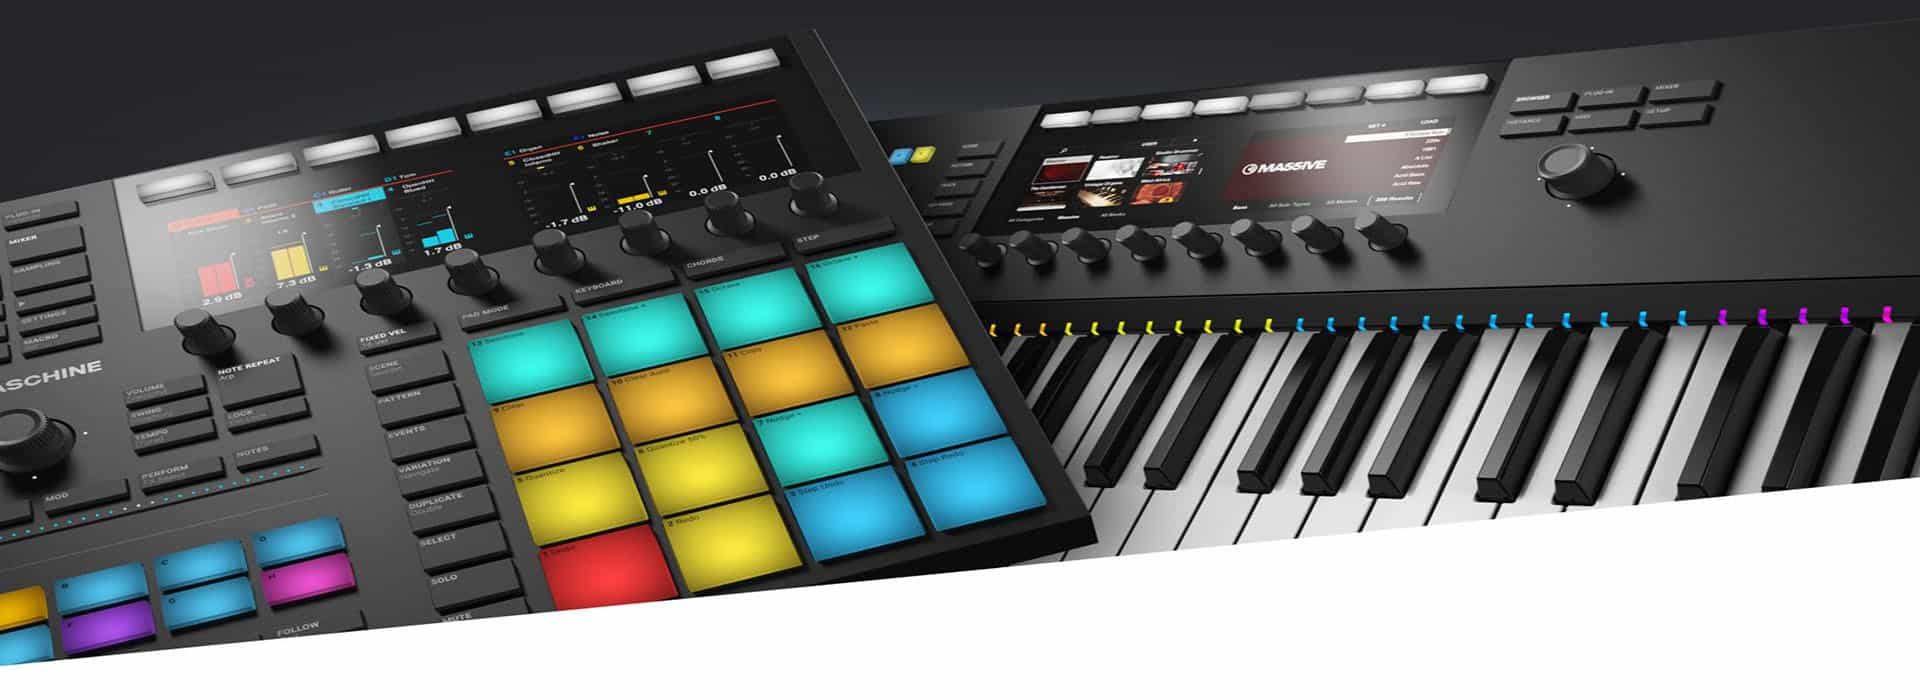 Best MIDI Keyboards For 2019 – Buyer's Guide and MIDI Keyboards Reviews